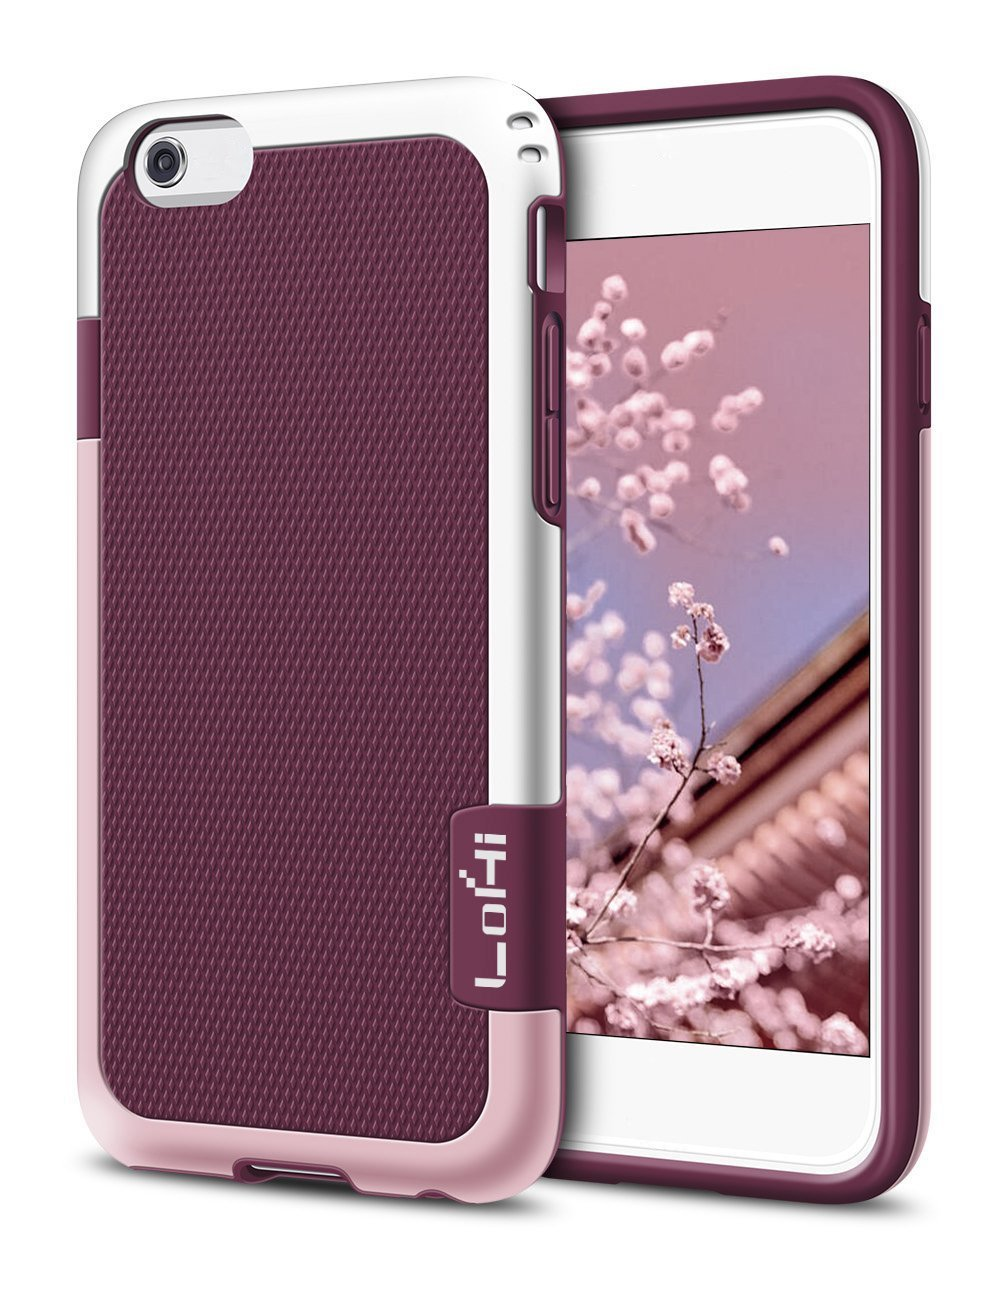 iPhone 6 Case LoHi Rubber Silicone Rugged Heavy Duty Protection Hybrid Cover Shock-Absorption Anti-Scratch Stylish Bumper Case for iPhone 6/6S Red